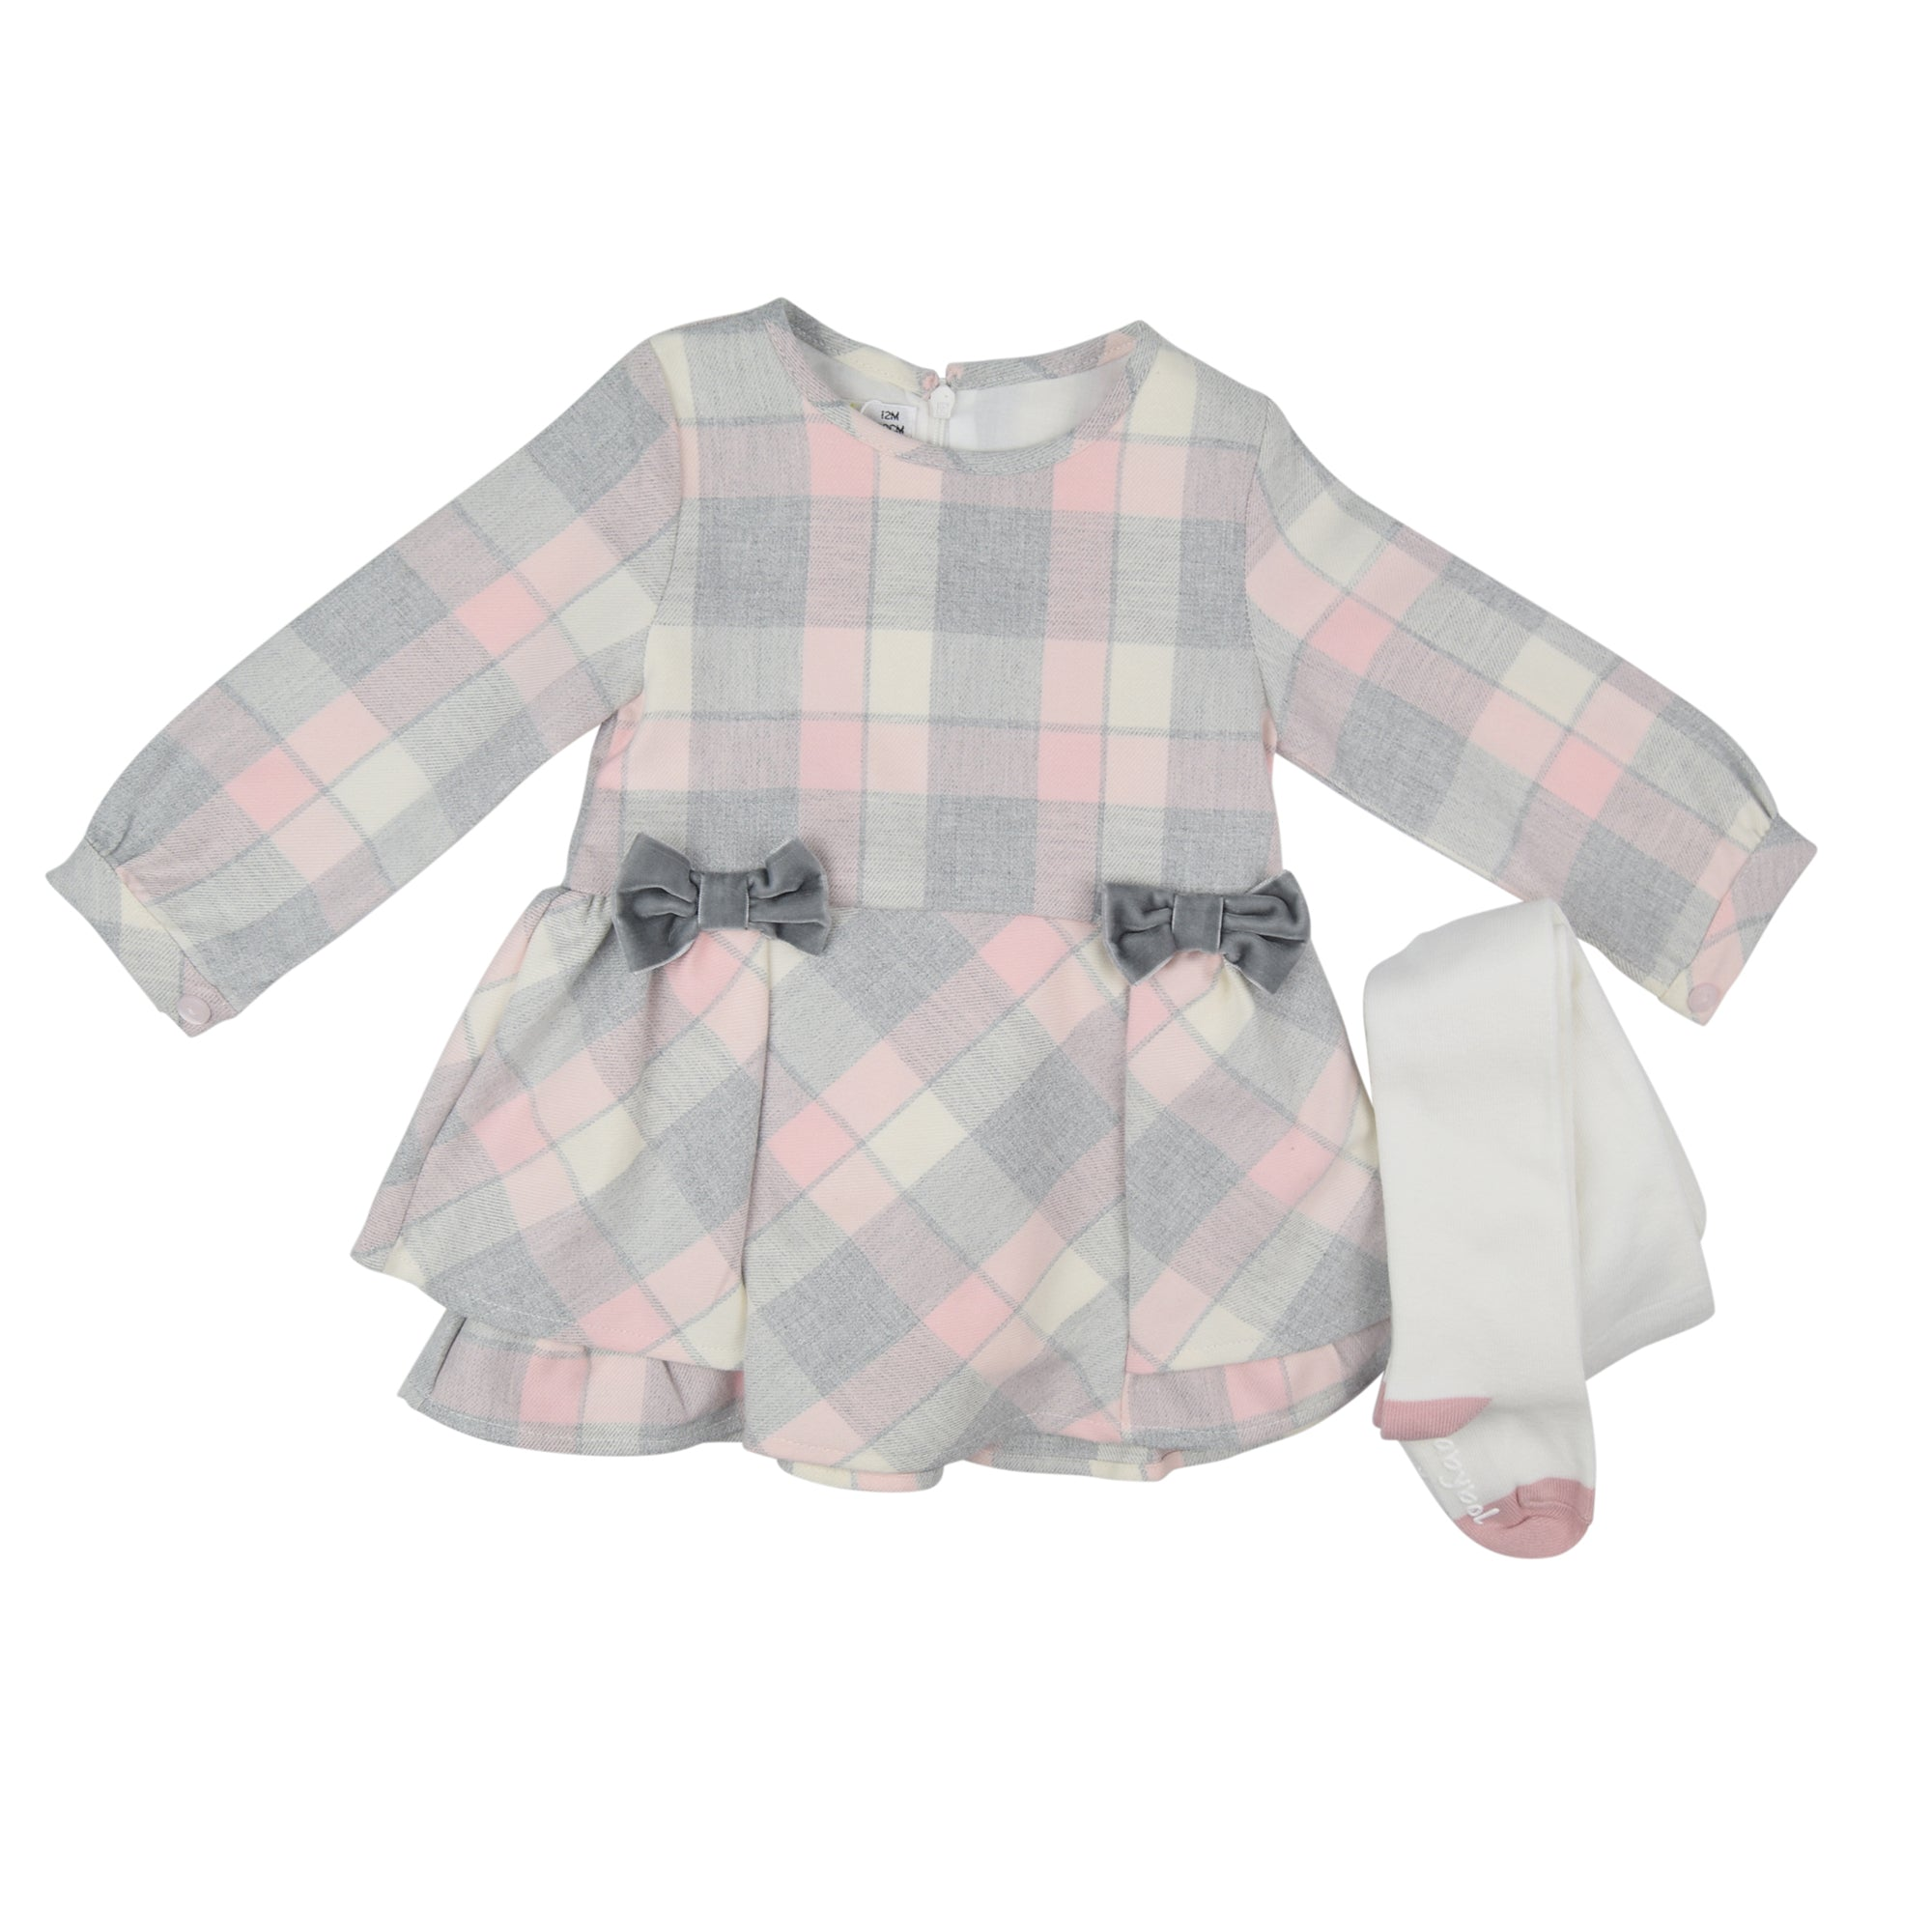 Babybol Plaid Dress with Tights